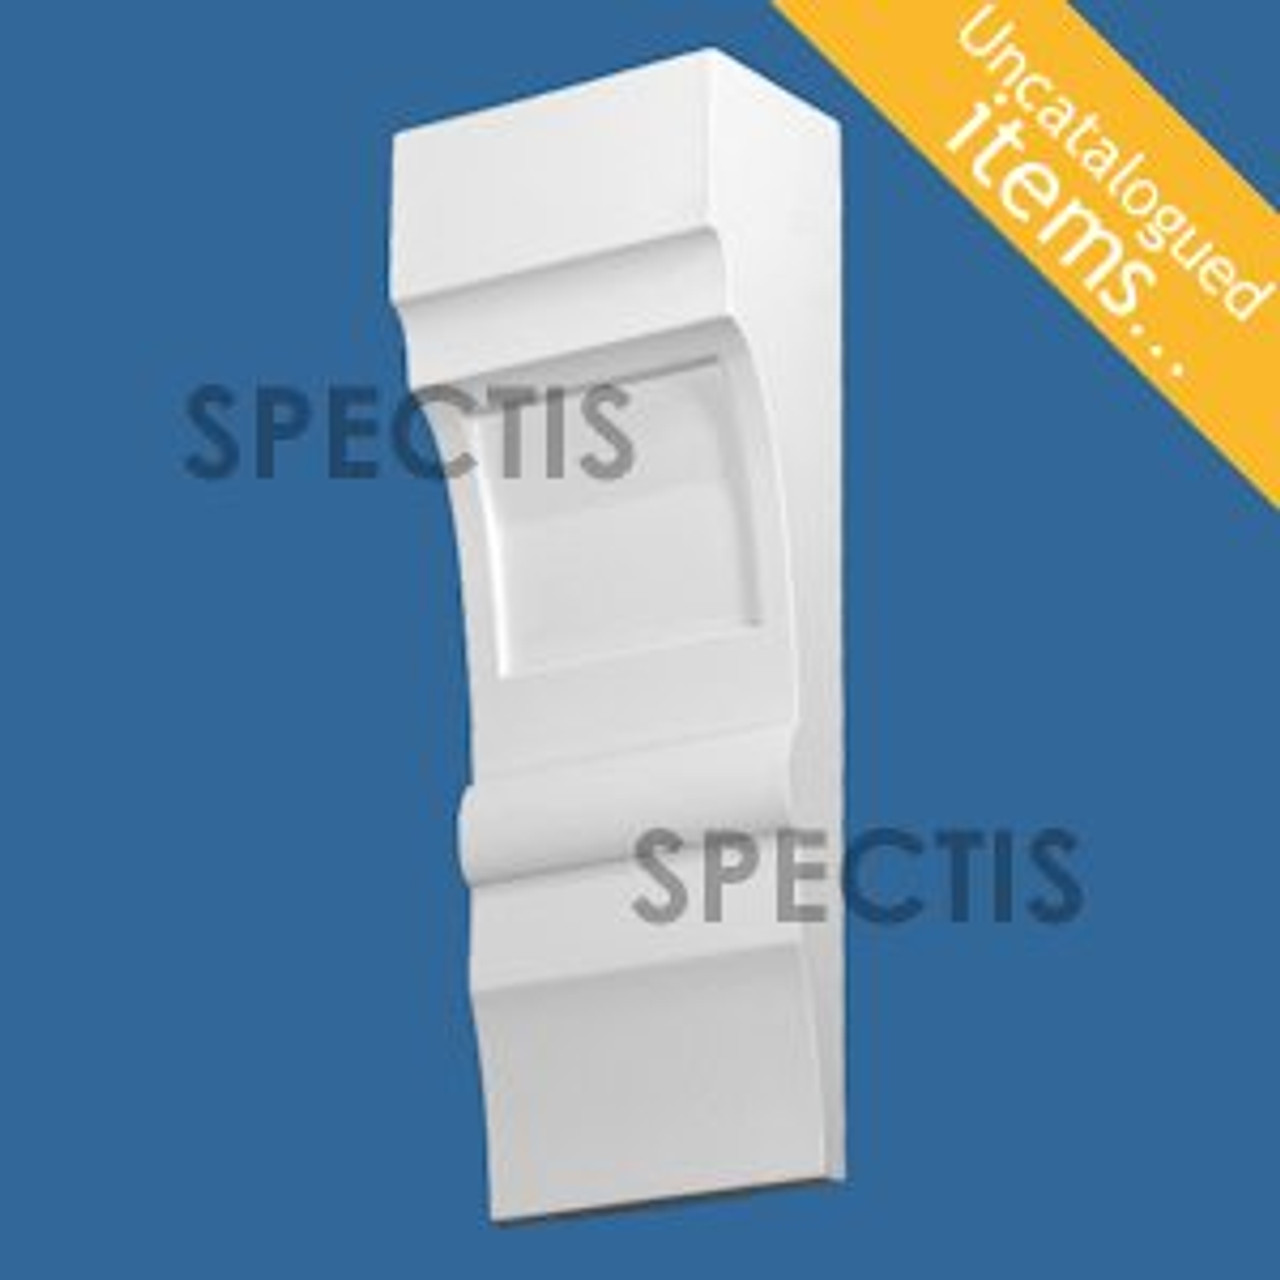 "BL3039 Spectis Eave Block or Bracket 5""W x 14""H x 3"" Projection"